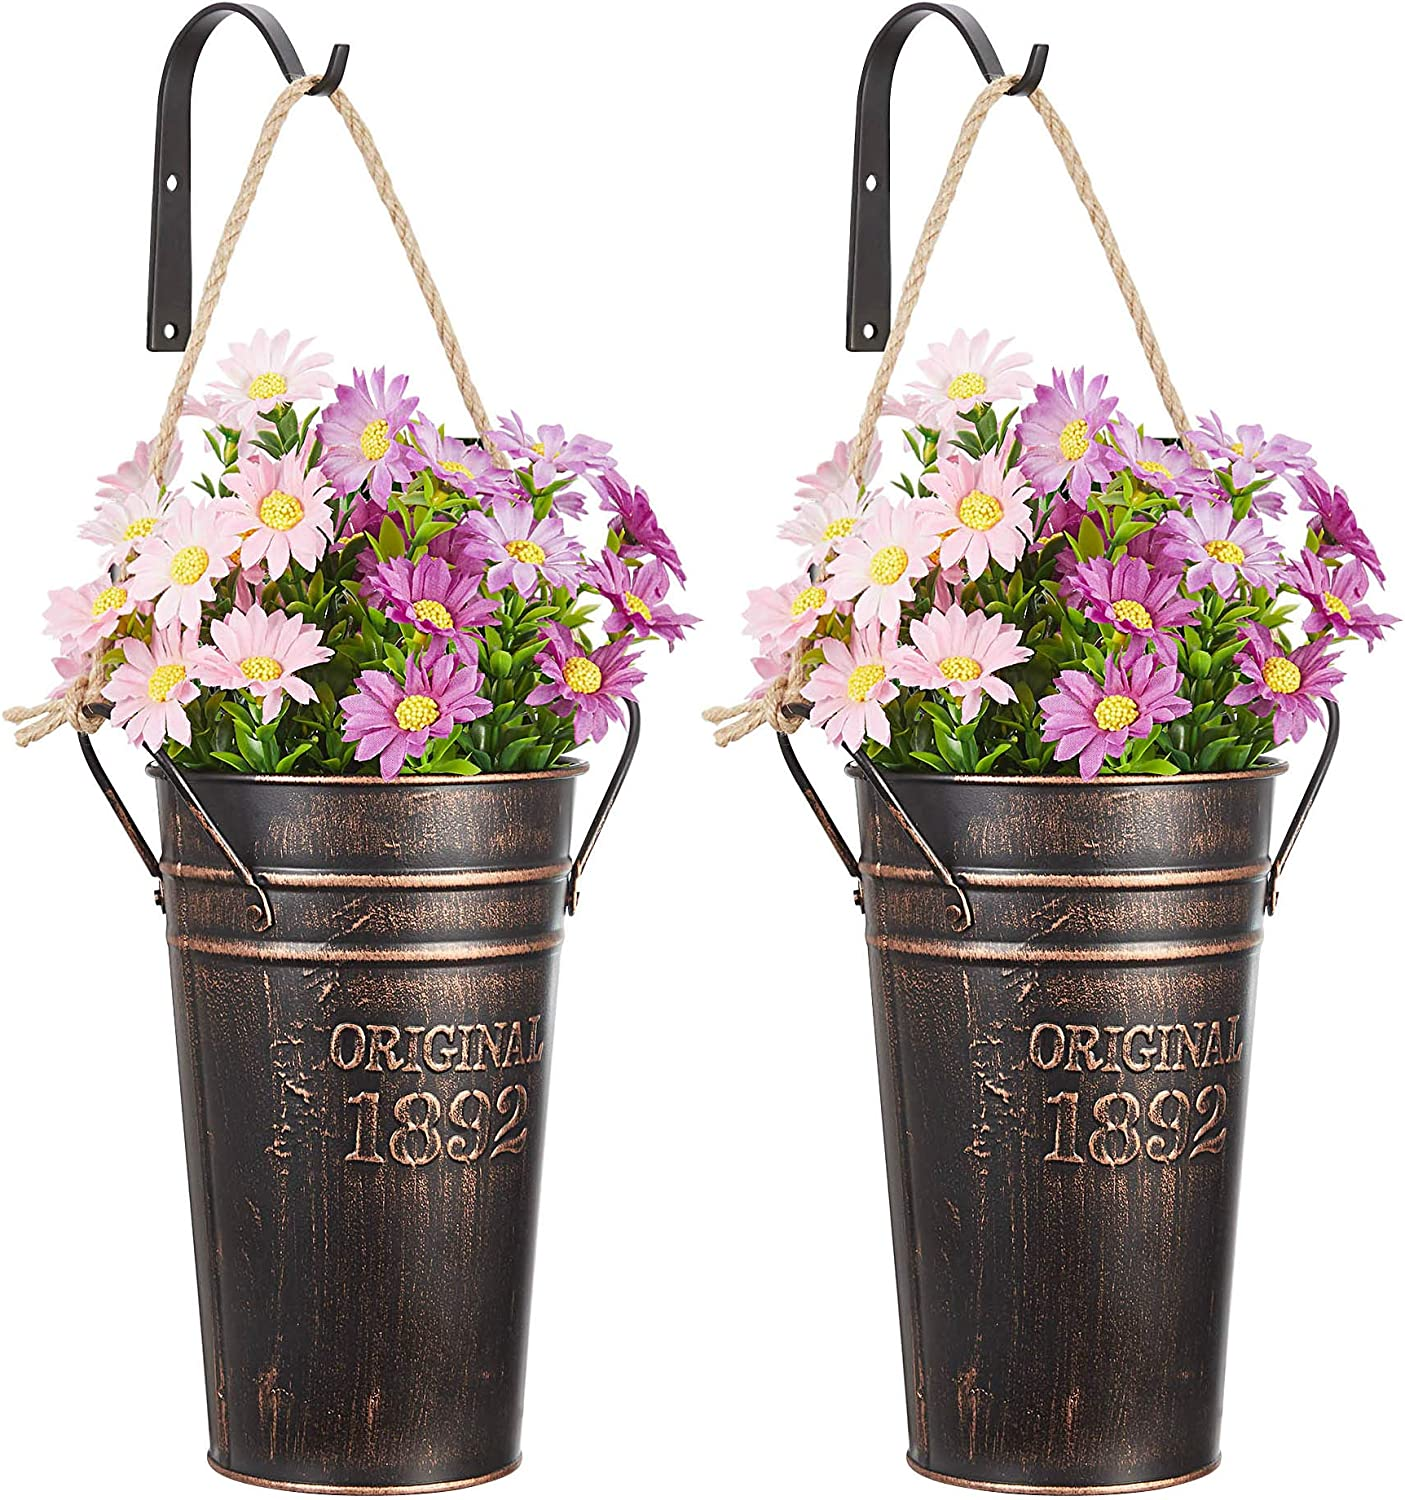 MONT PLEASANT Metal Wall Planter Hanging Country Home Wall Vase with Hooks Farmhouse Rustic Wall Decor Pot for Plants Flower Home Decoration Set of 2